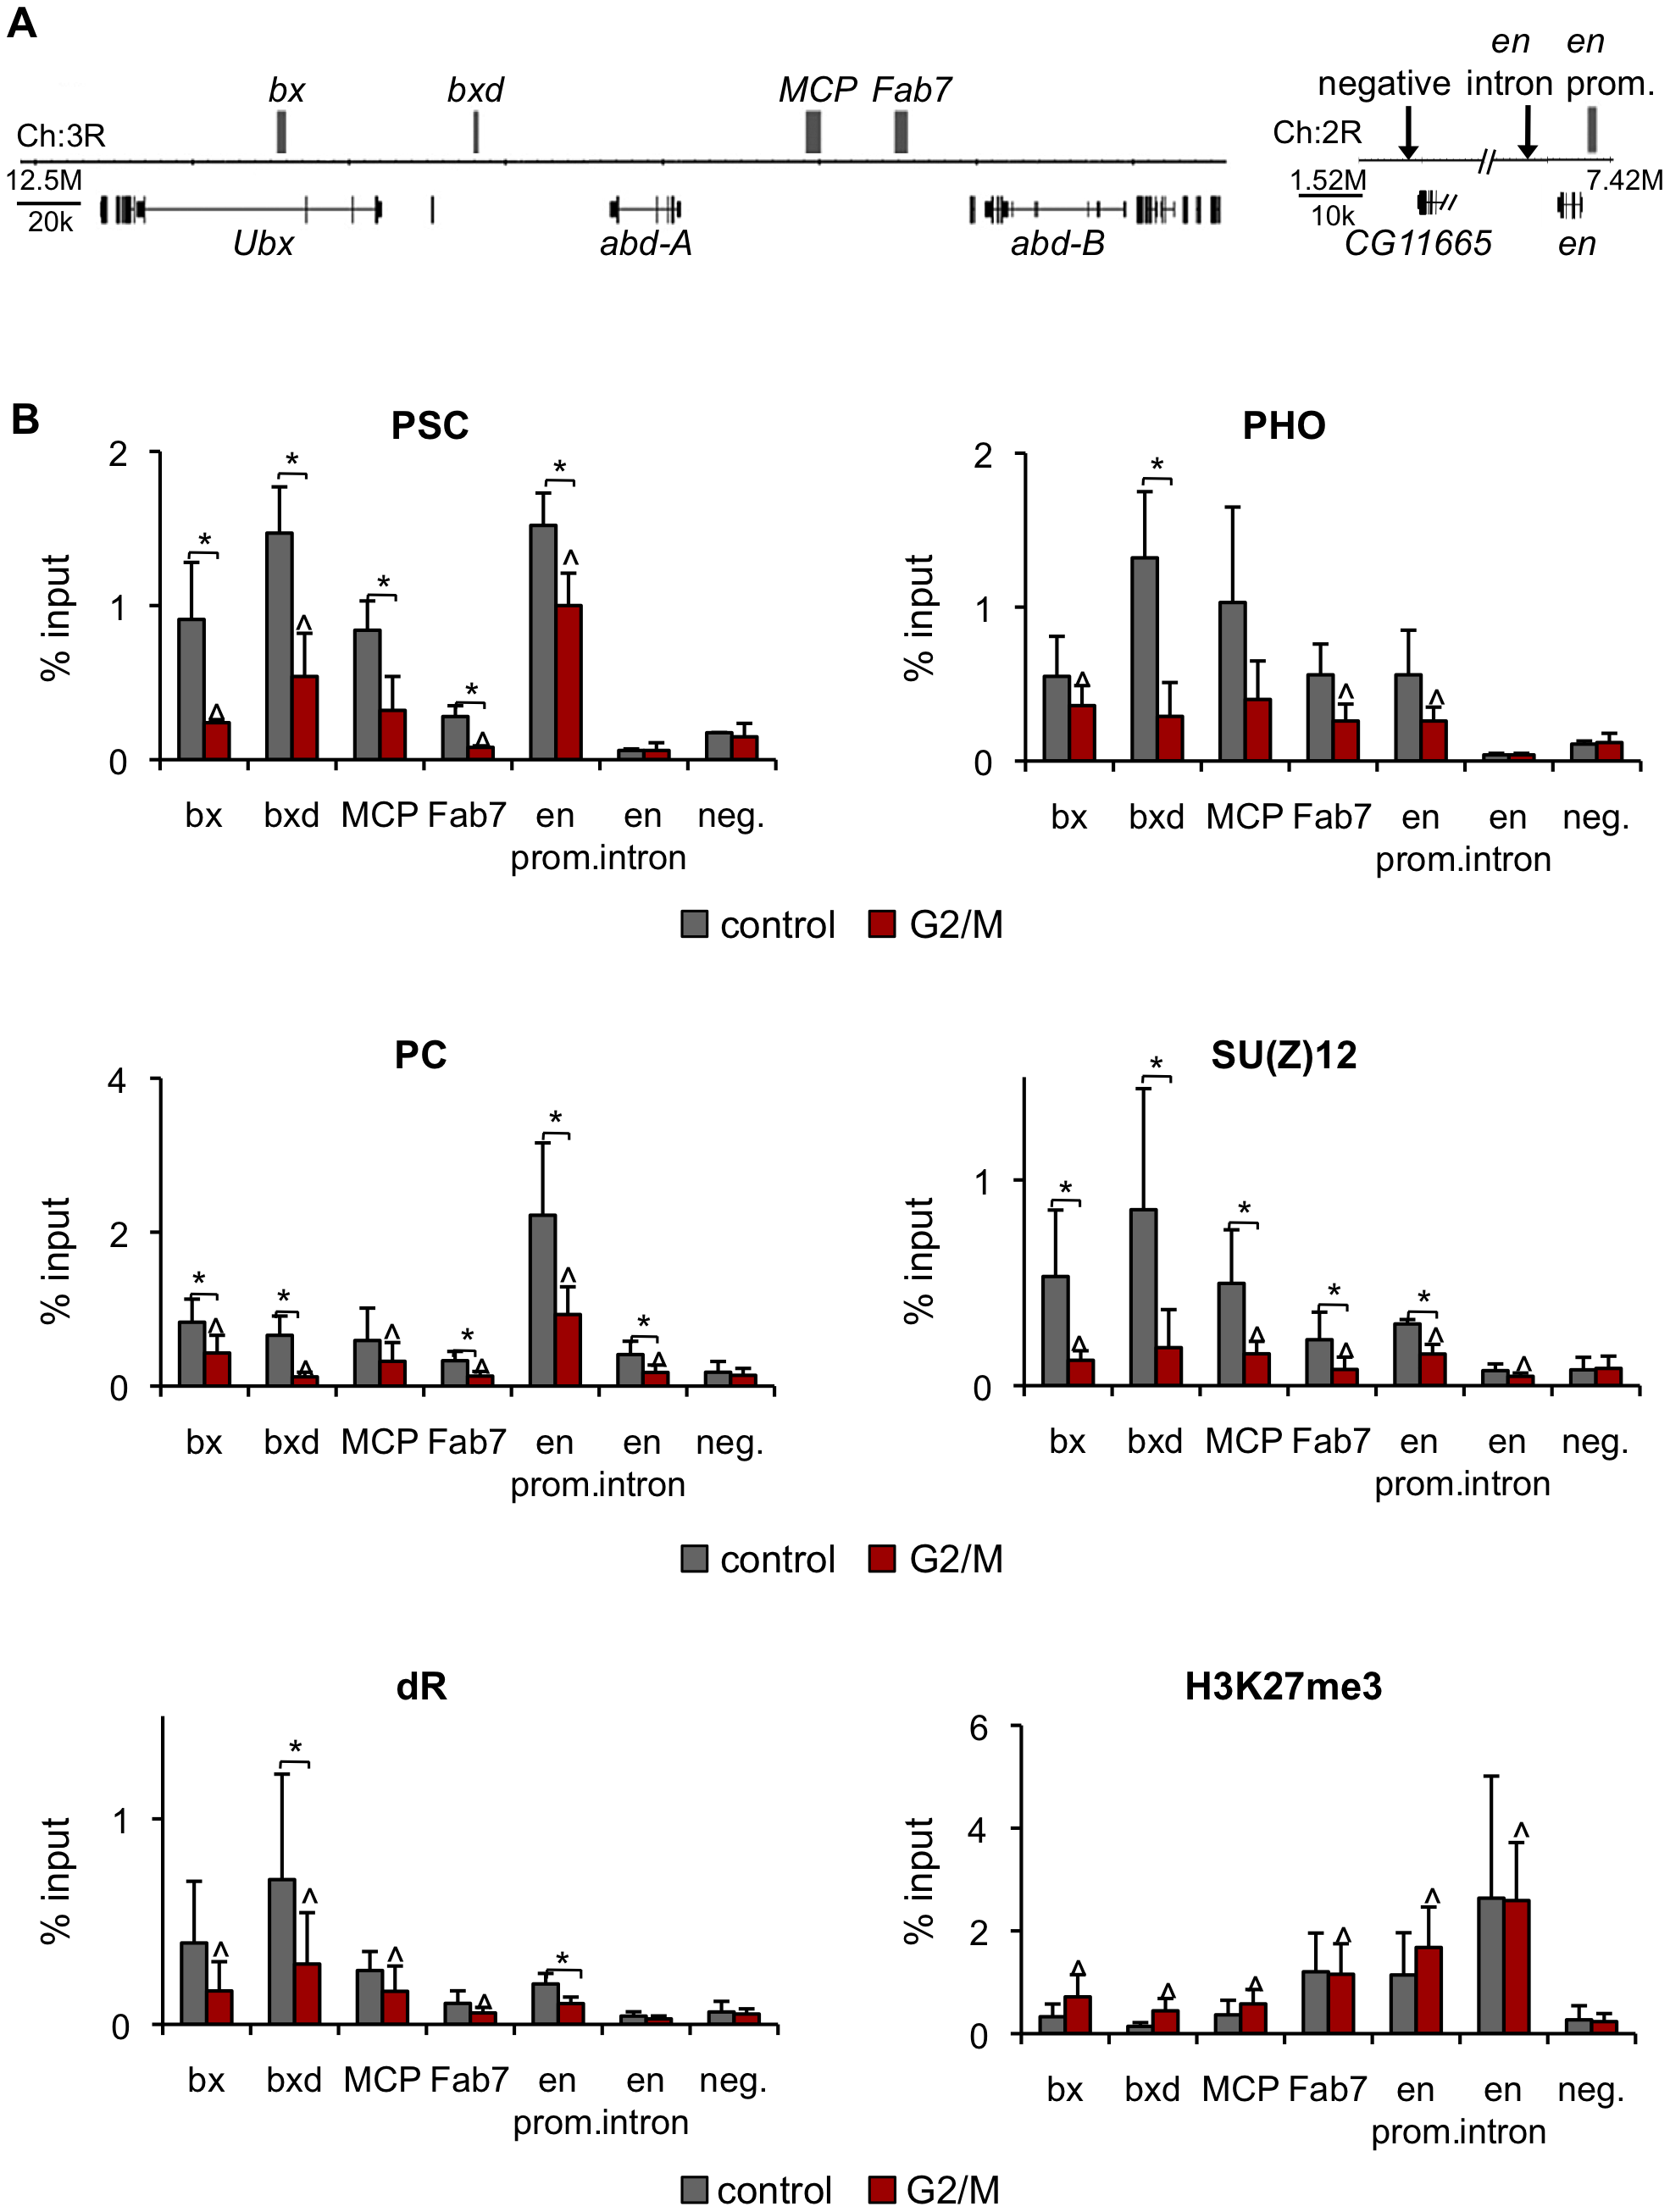 PcG protein binding, but not H3K27me3, is reduced at PREs in G2/M cells.